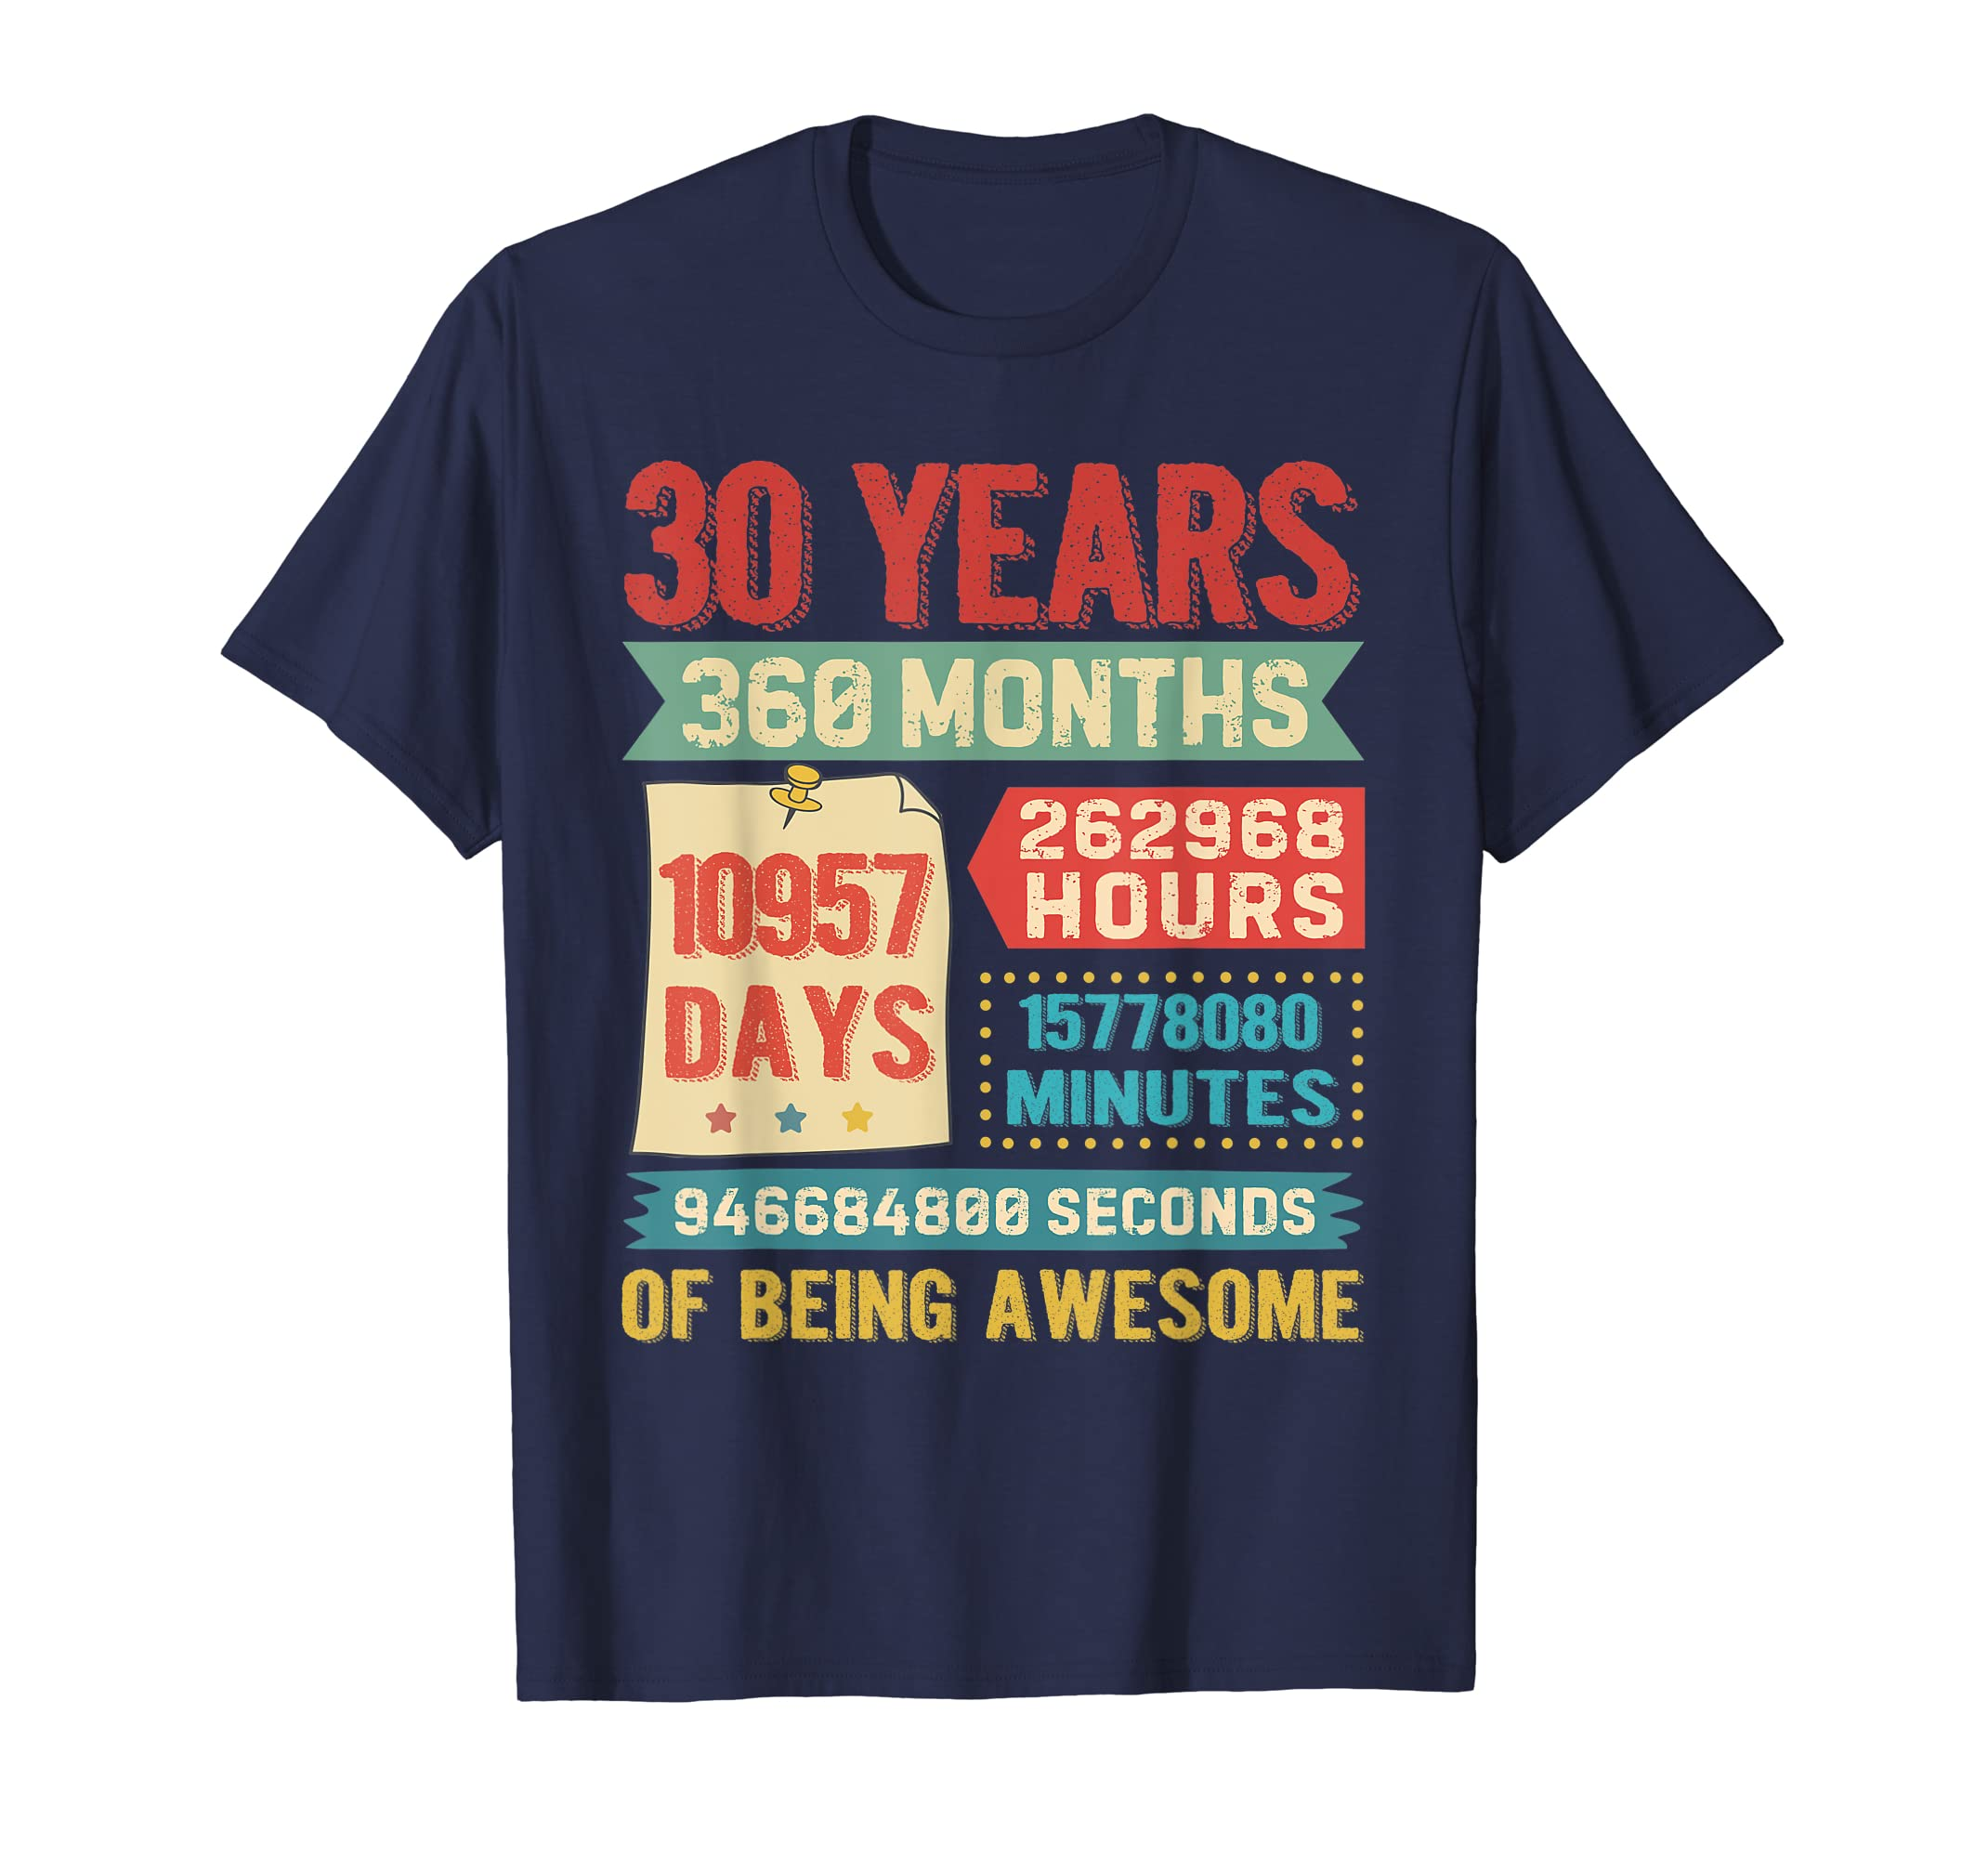 9bcb6d129 Amazon.com: Funny 30 Years Old 360 Months Shirt 30th Birthday Gift Ideas:  Clothing